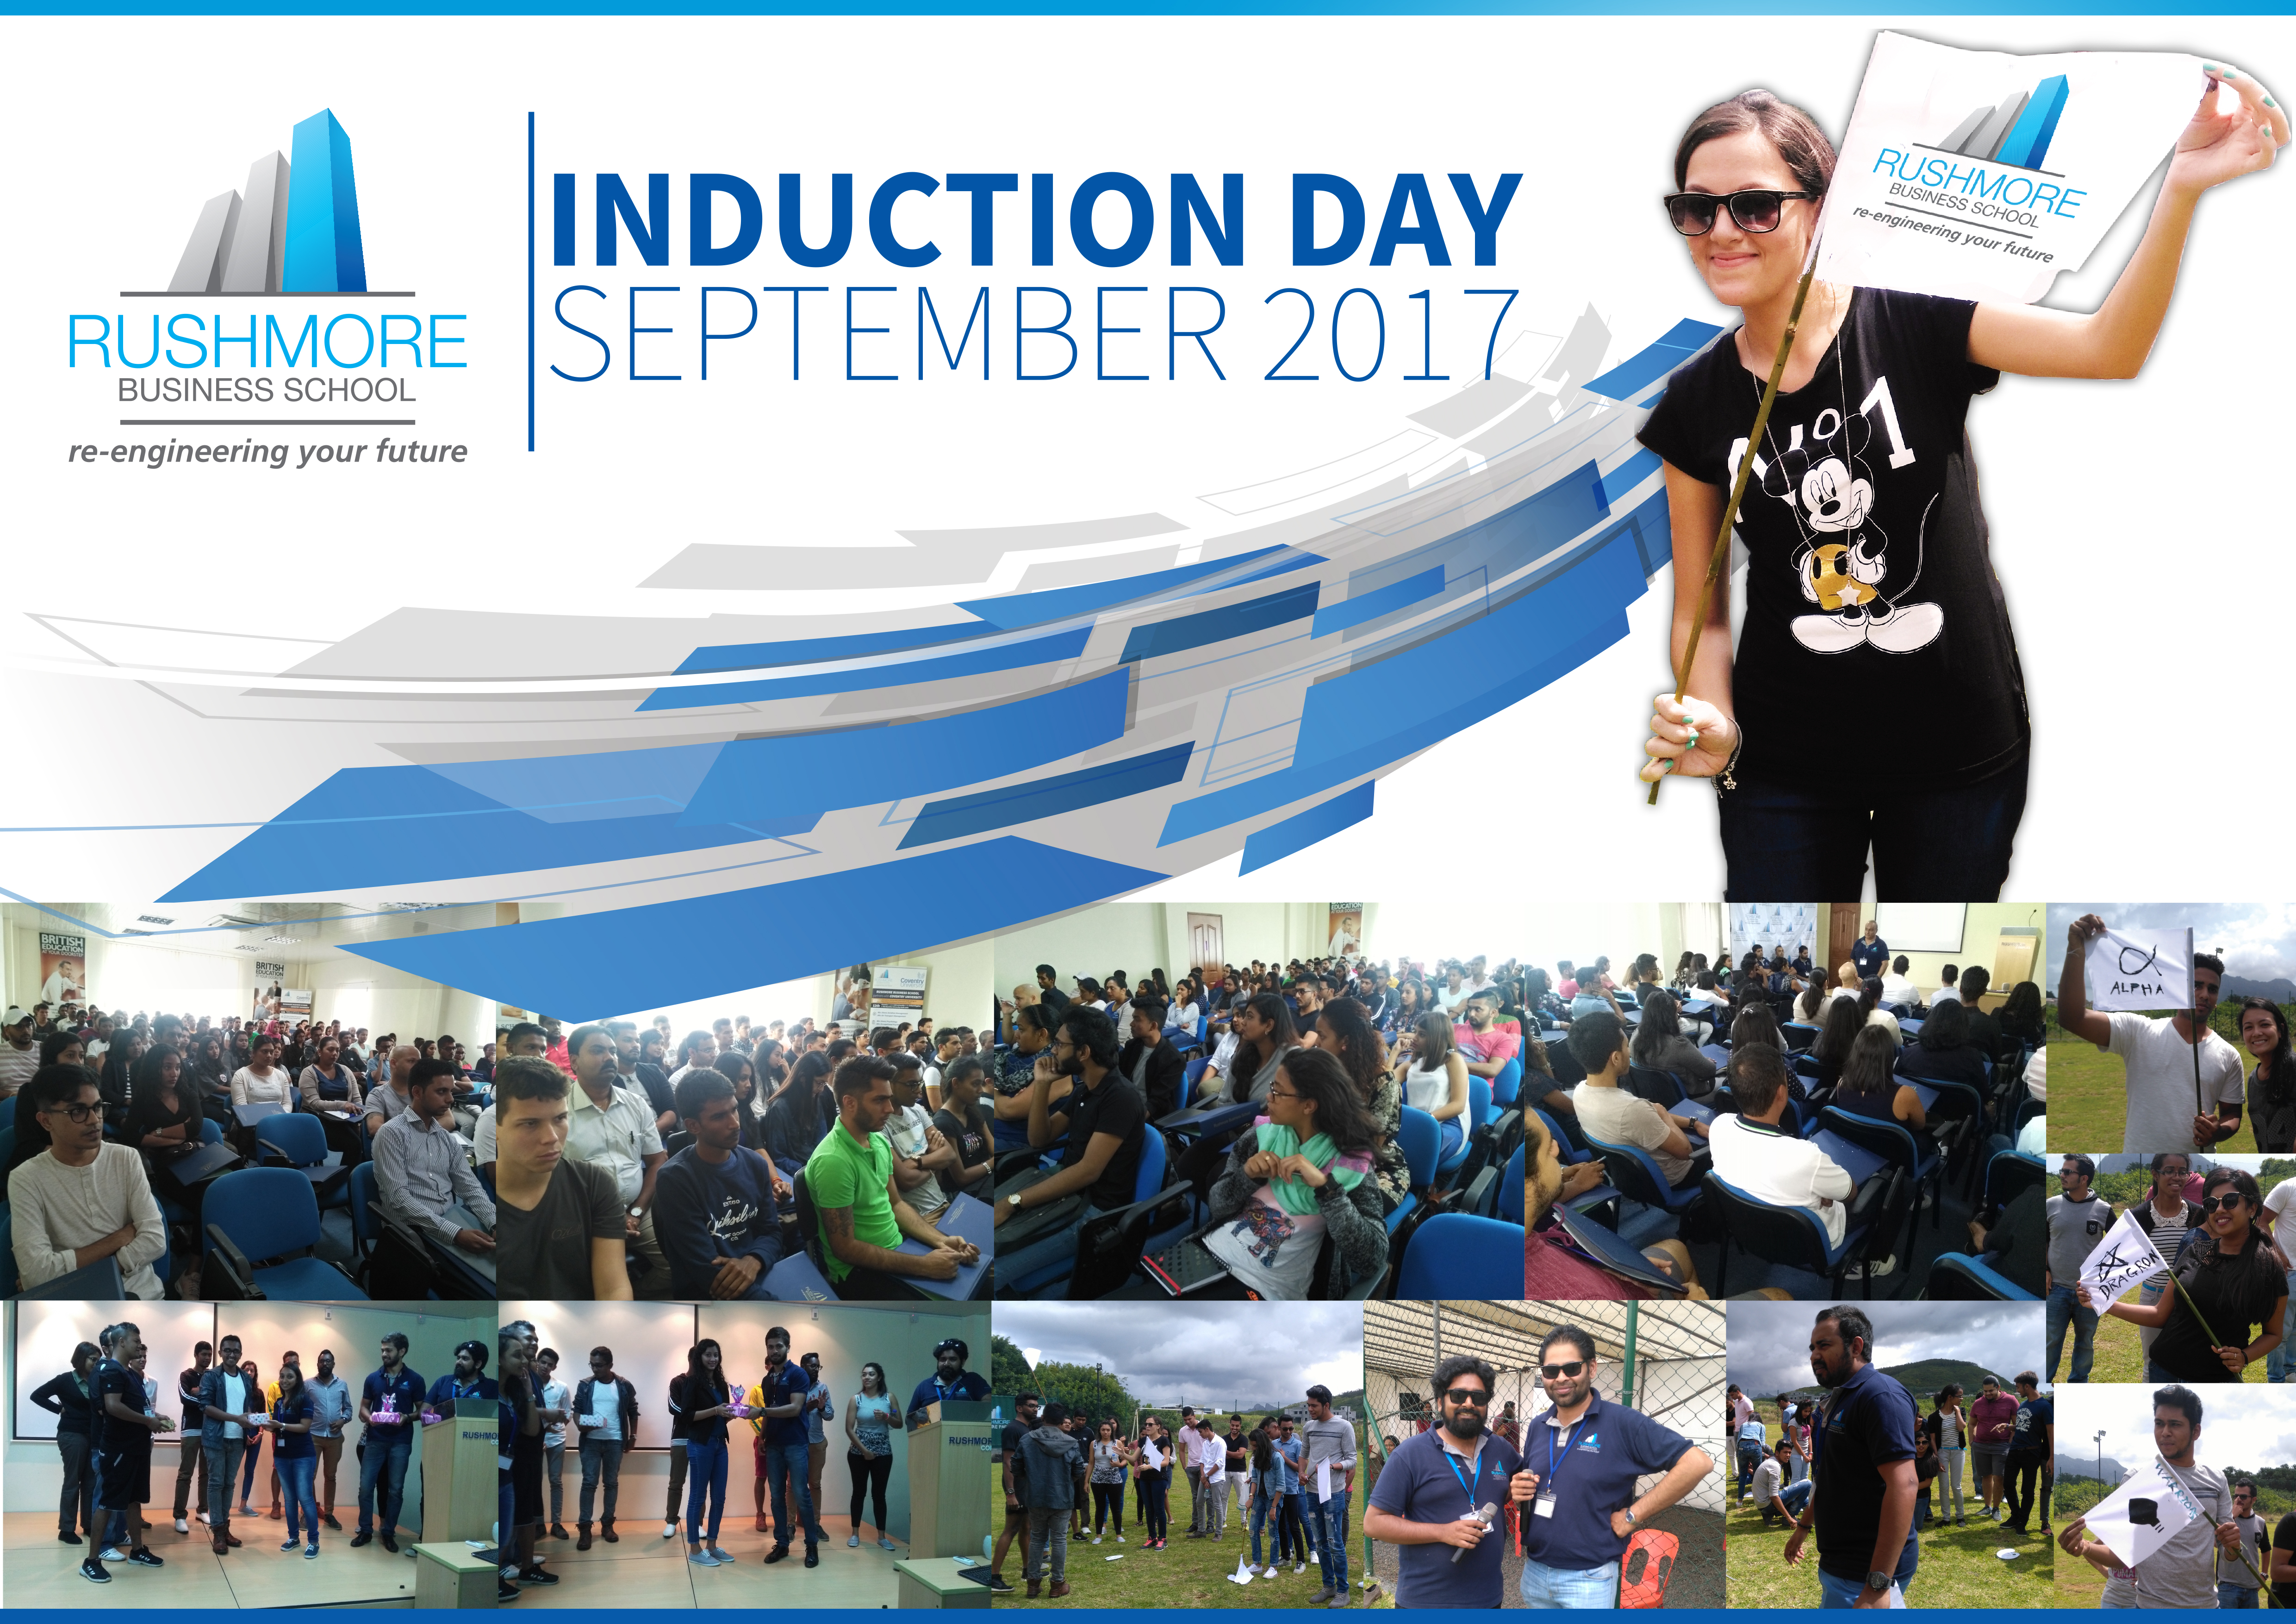 2017 INDUCTION DAY